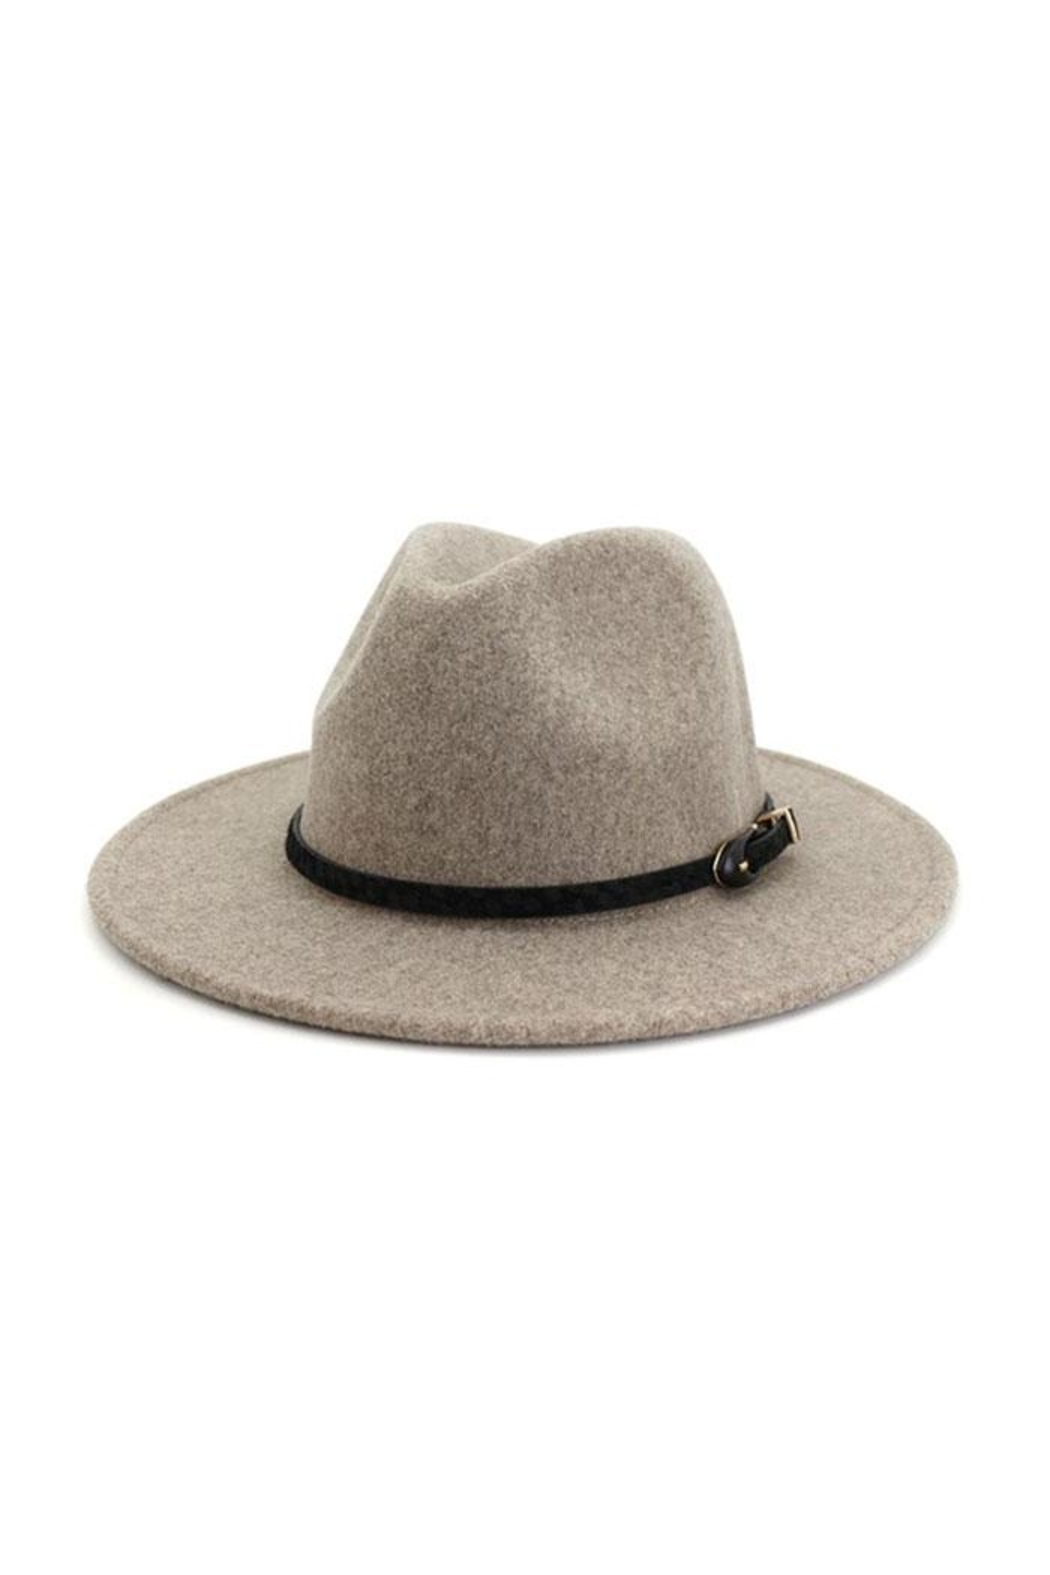 accity Black Pointed Belt Casual Panama Hat - Front Cropped Image